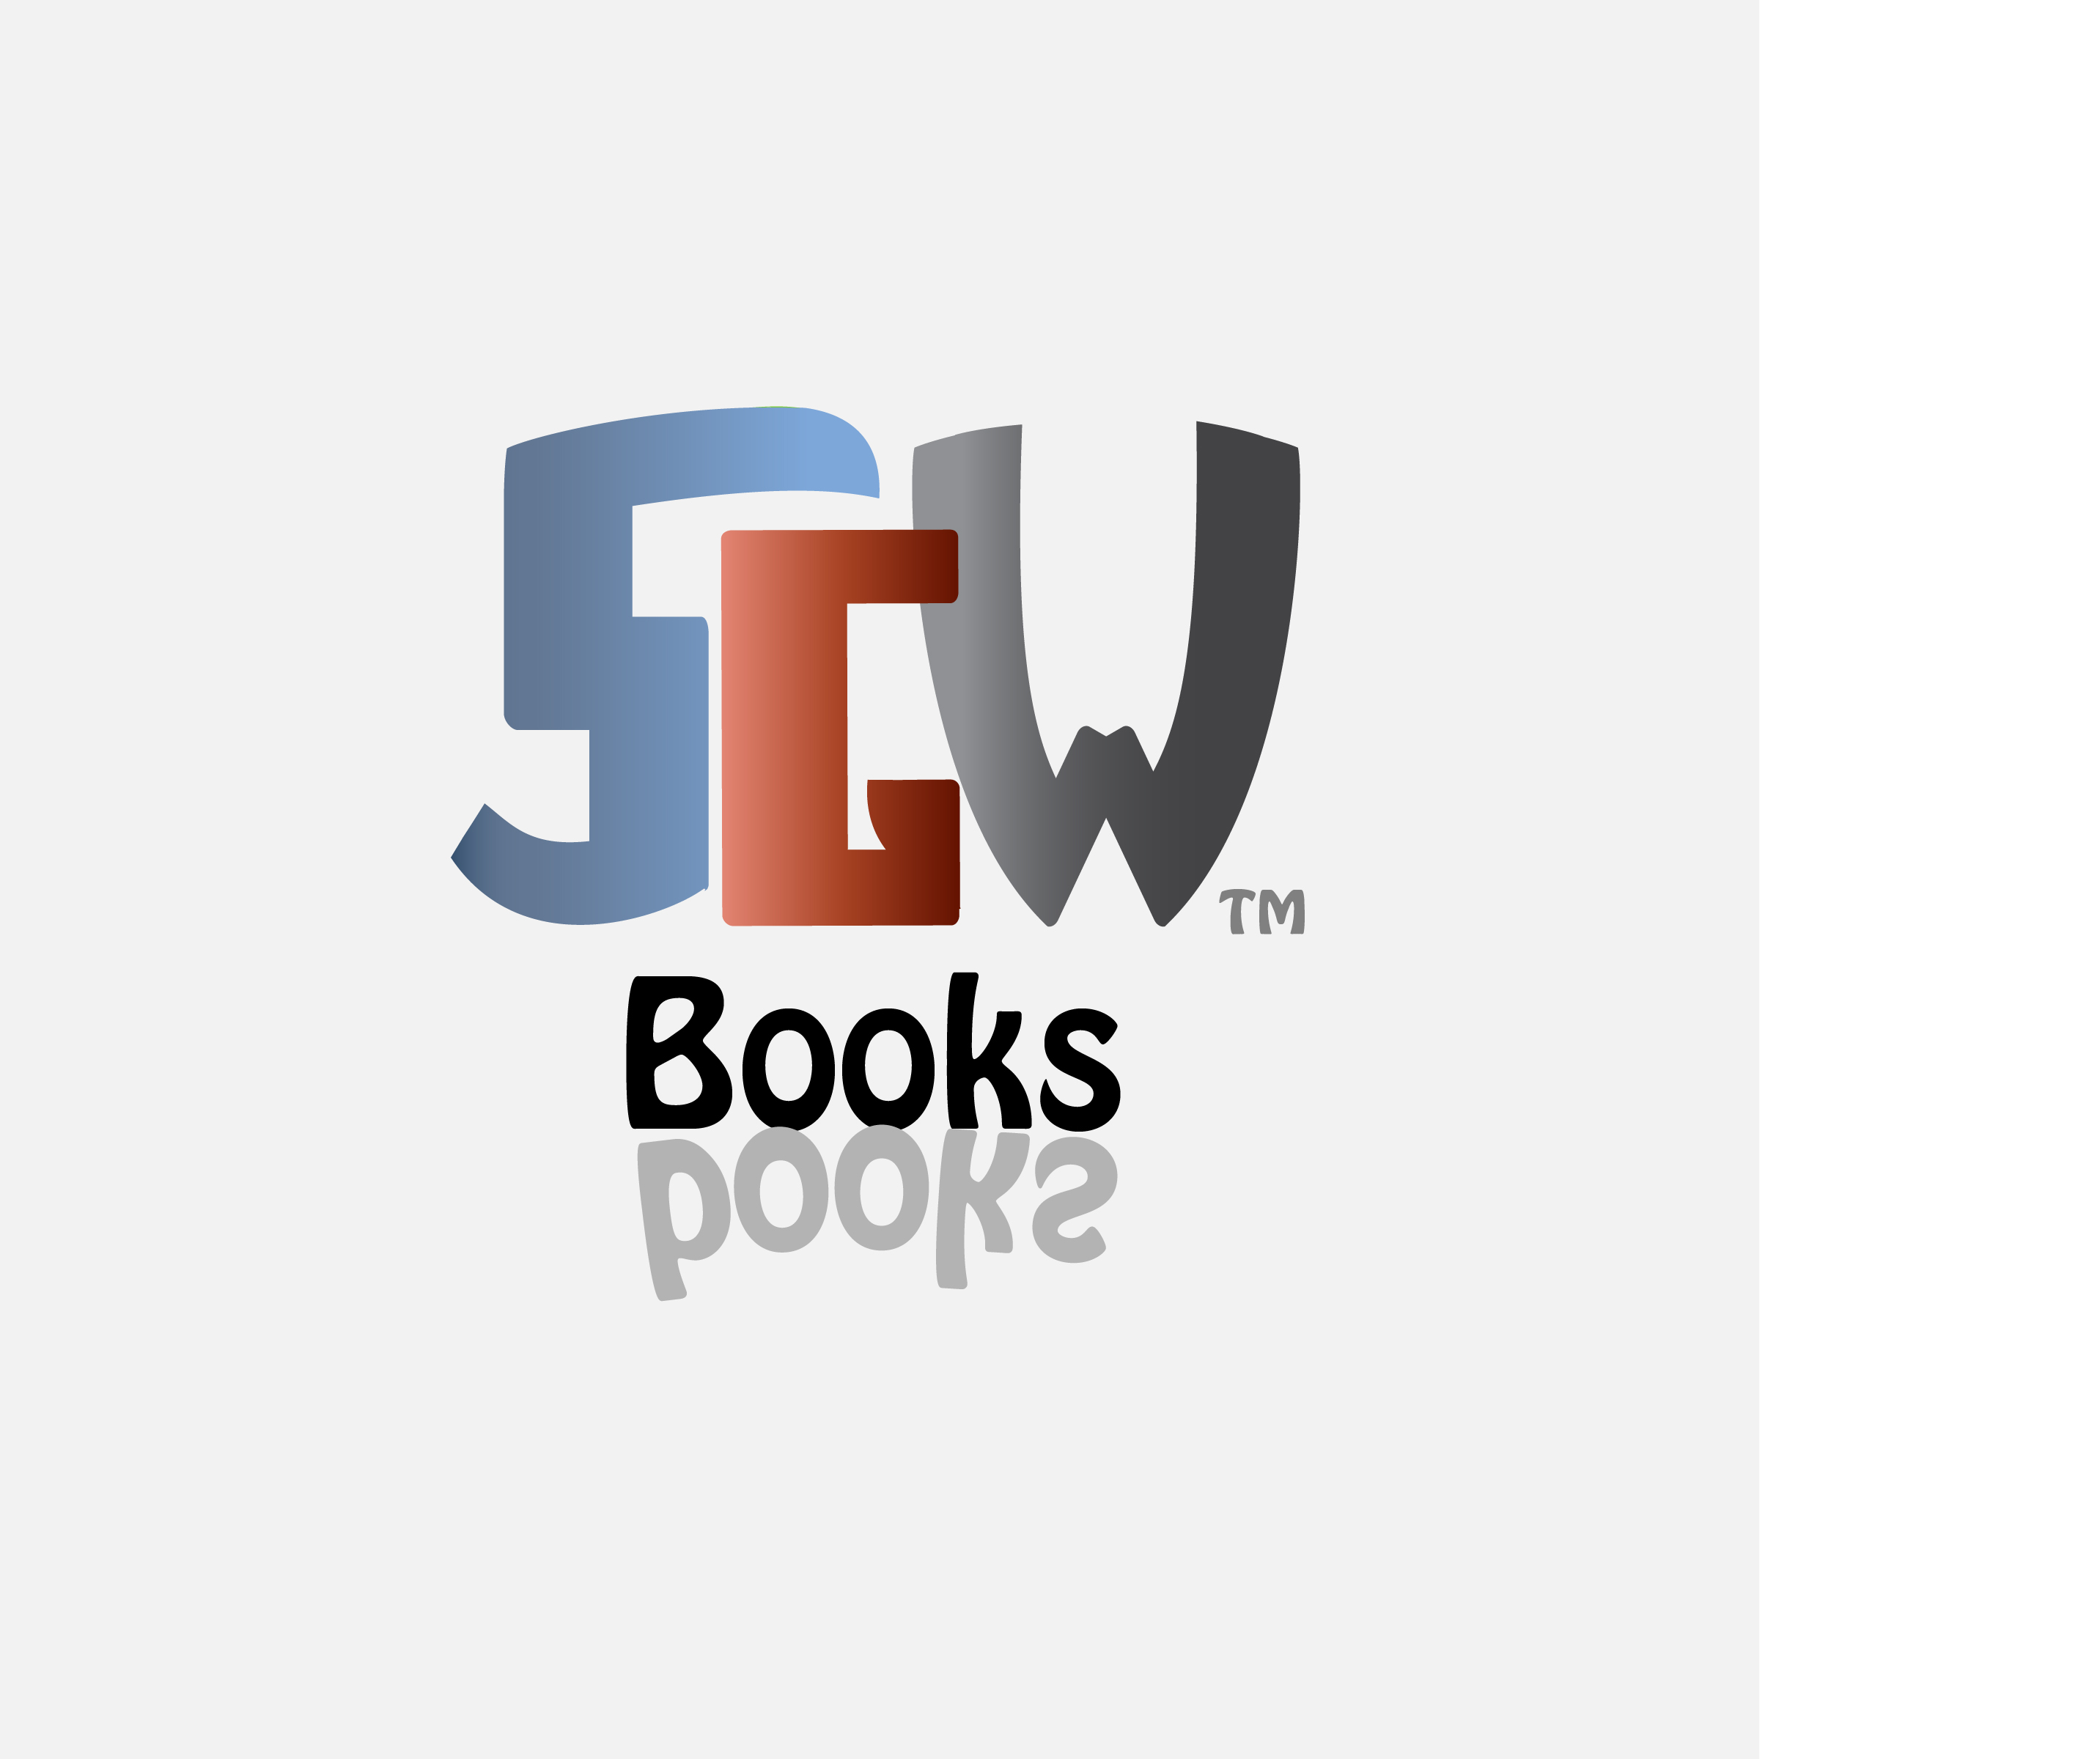 Logo Design by Nancy Grant - Entry No. 41 in the Logo Design Contest SGW Books Logo Design.